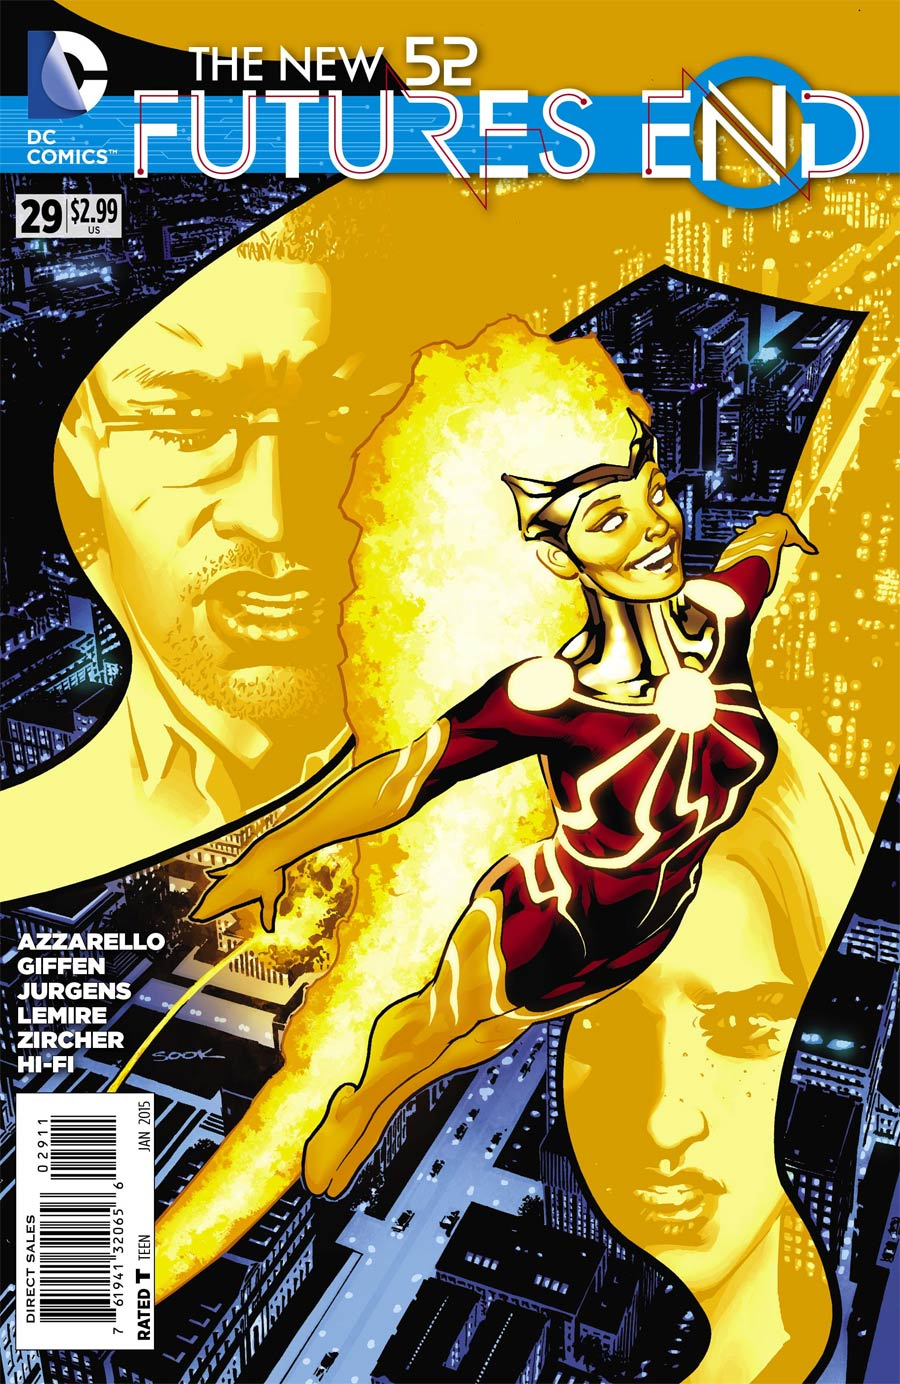 New 52 Futures End #29